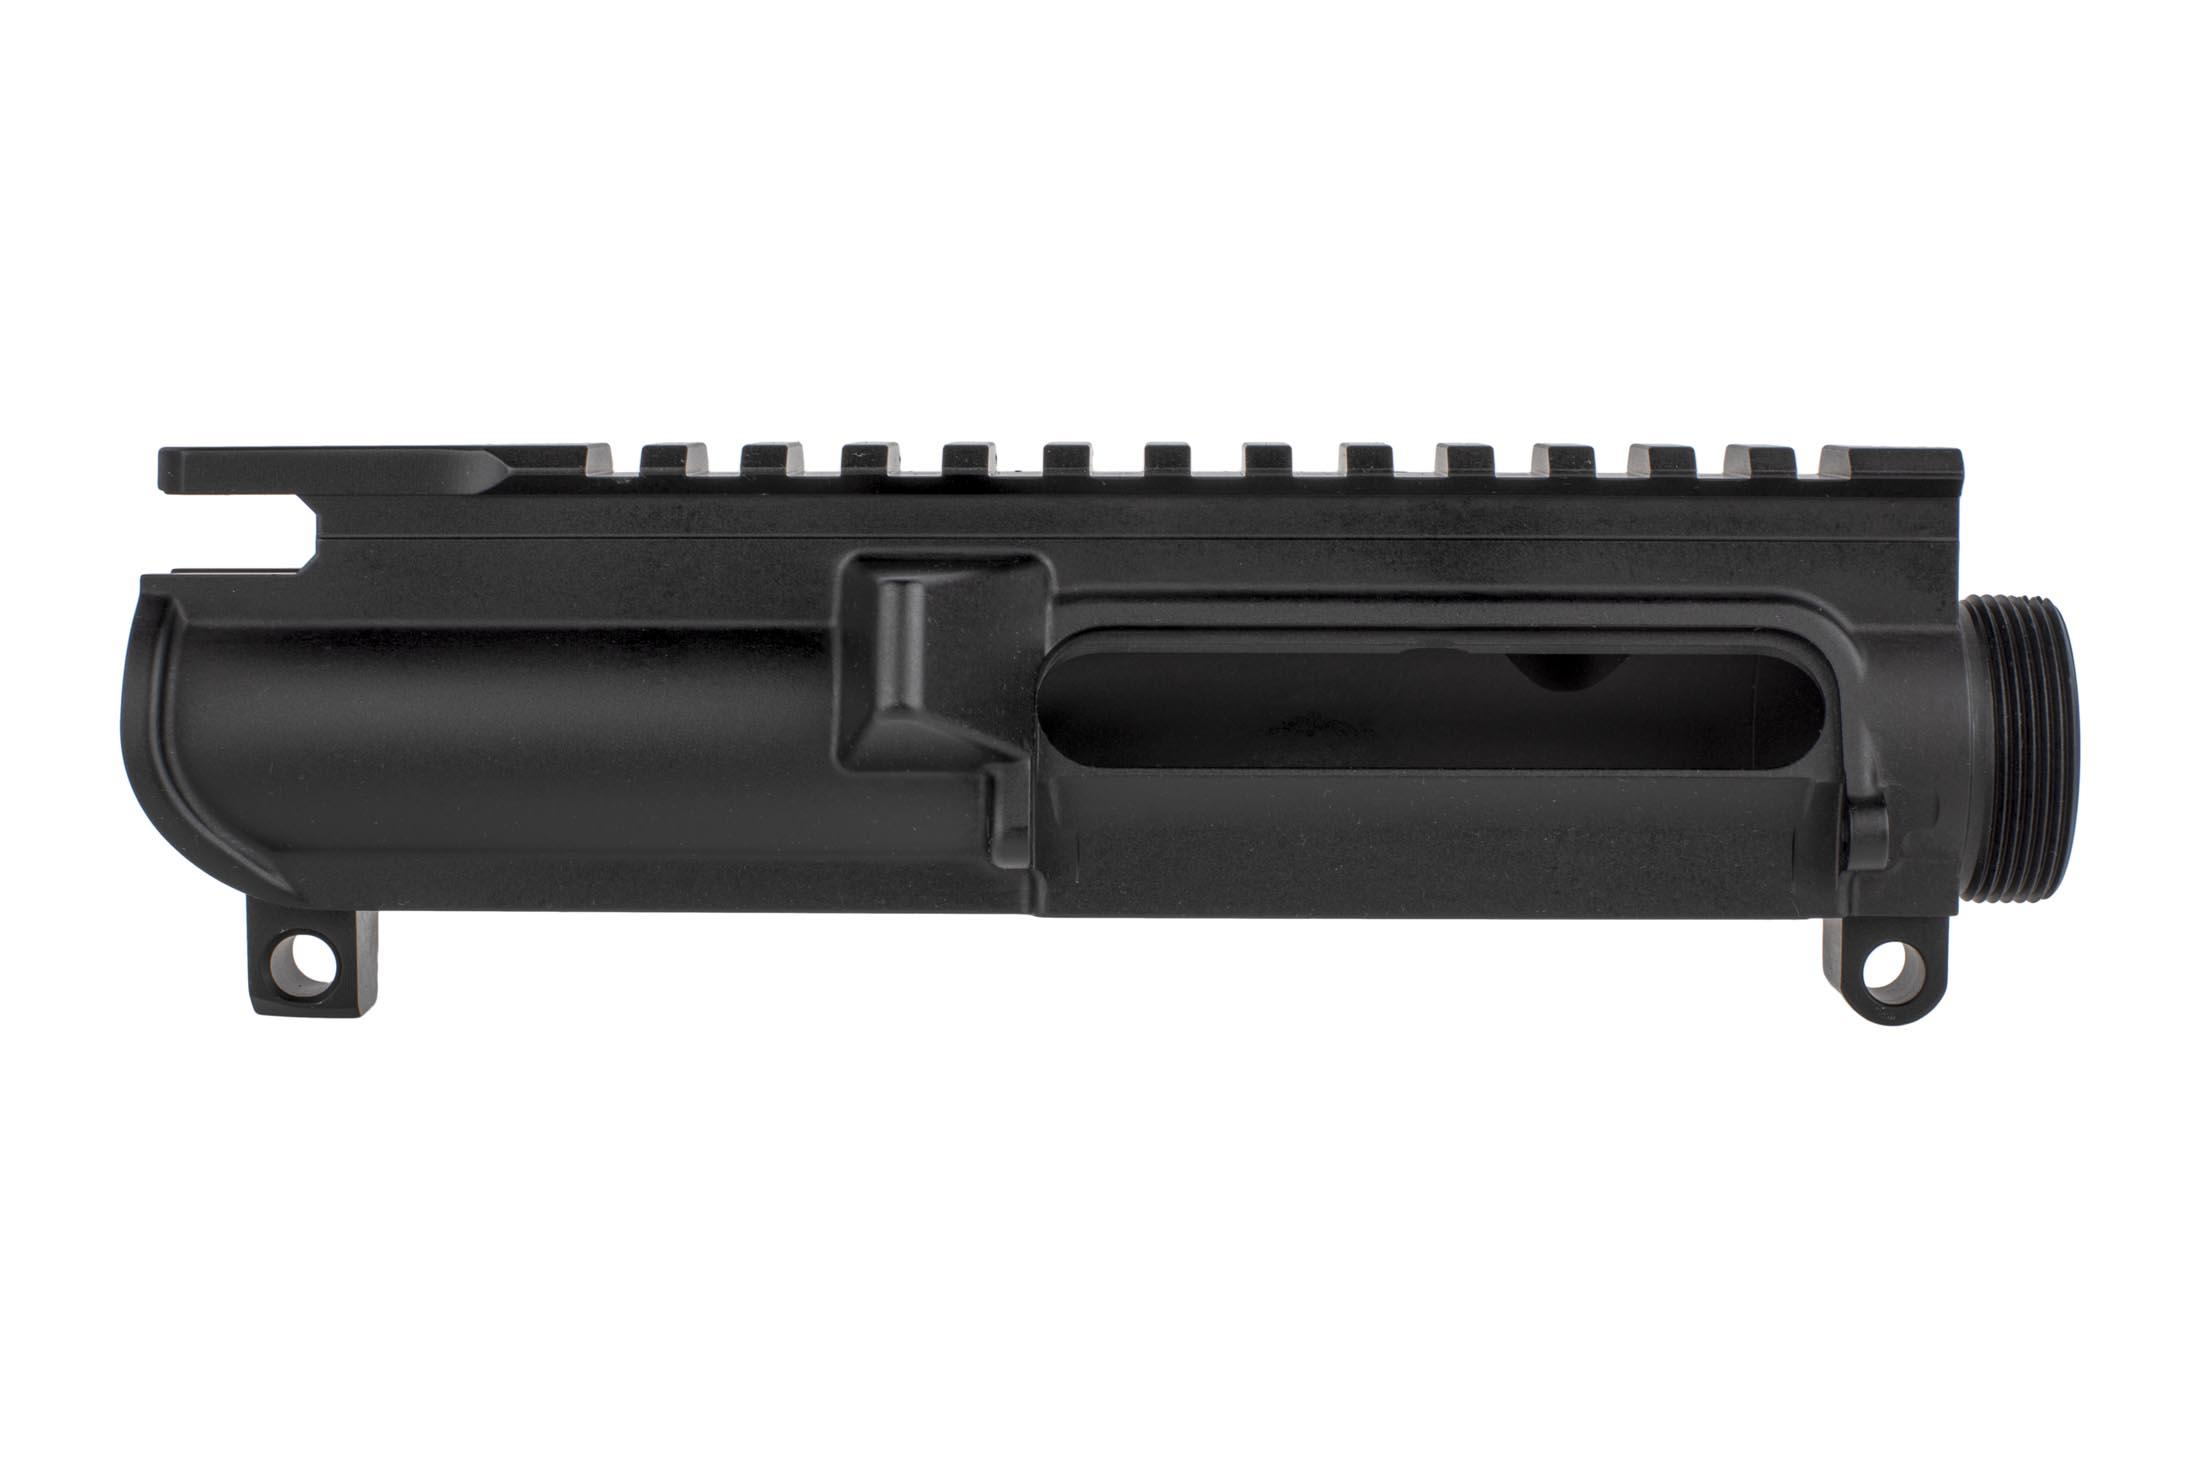 Aero Precision AR-15 stripped upper receiver offers slick side style without forward assist for reduced weight